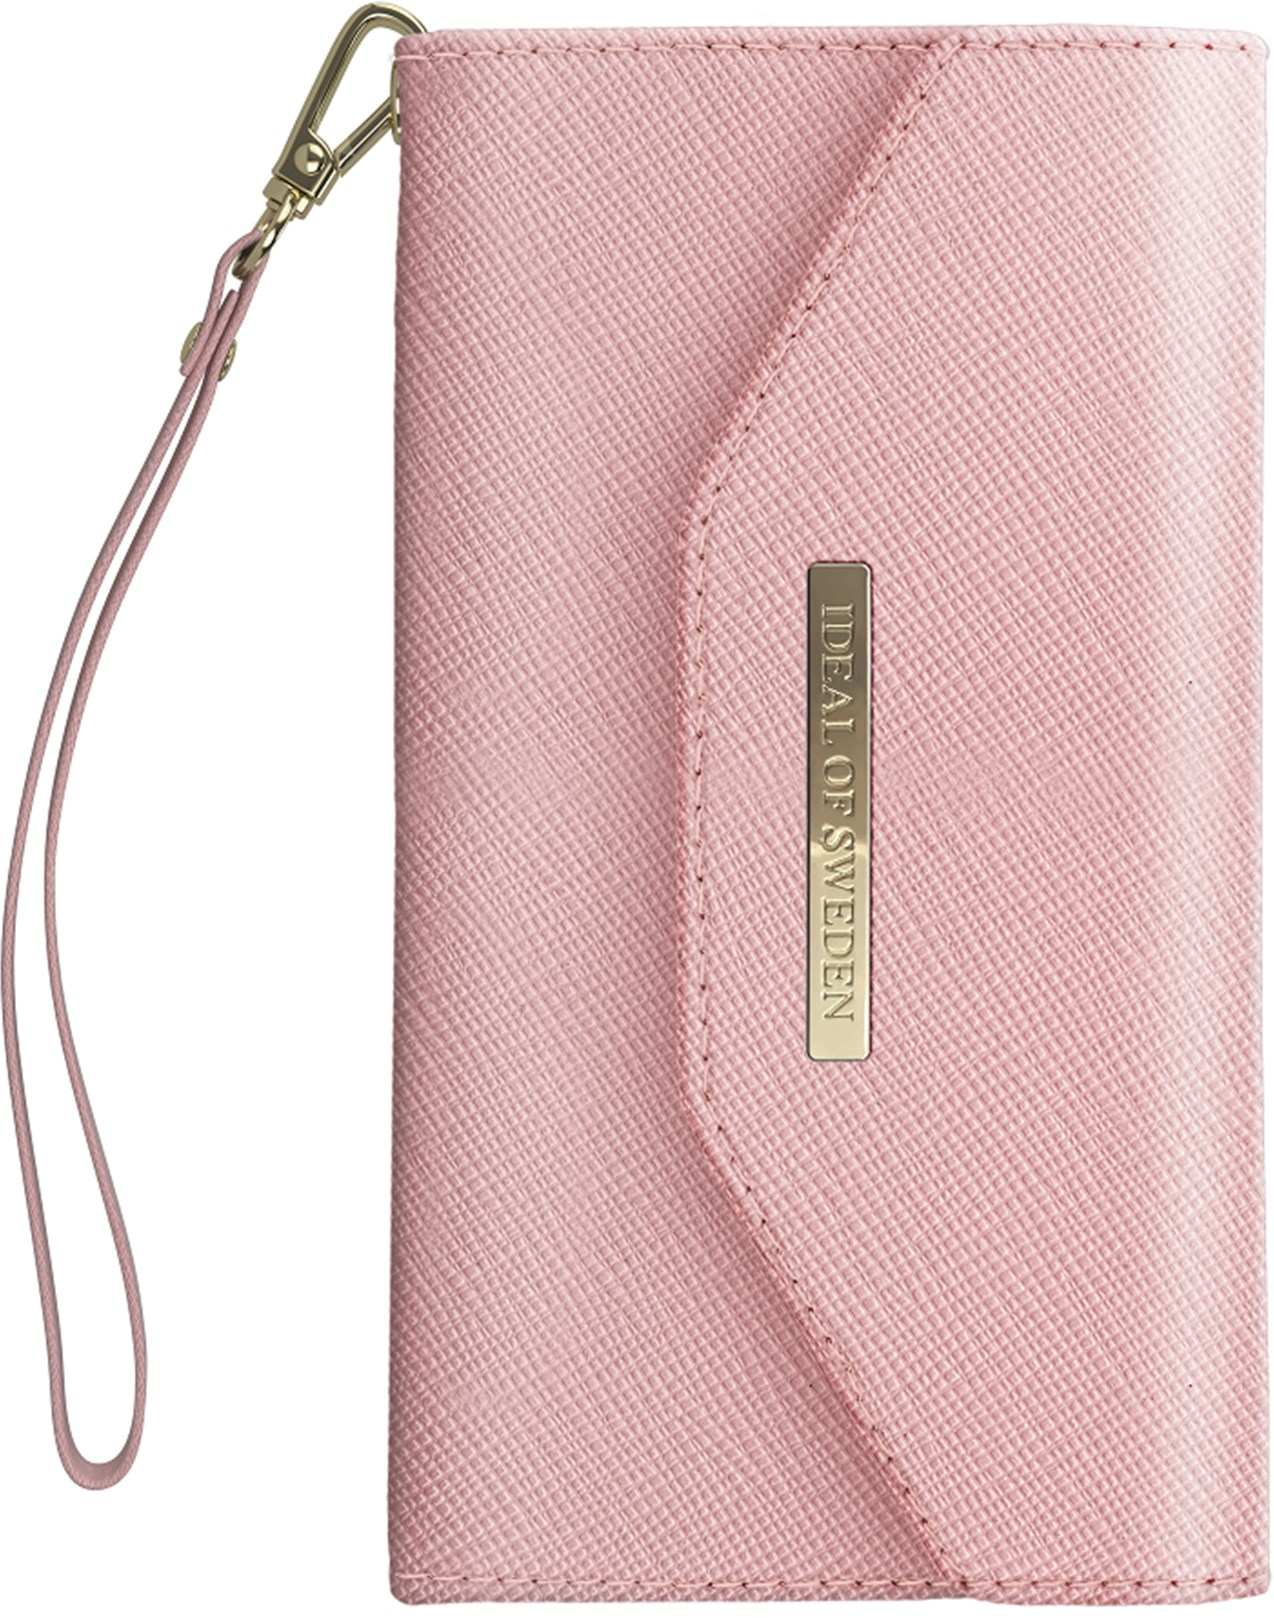 iDeal of Sweden Ideal Mayfair Clutch Samsung Galaxy S10 Plus Pink